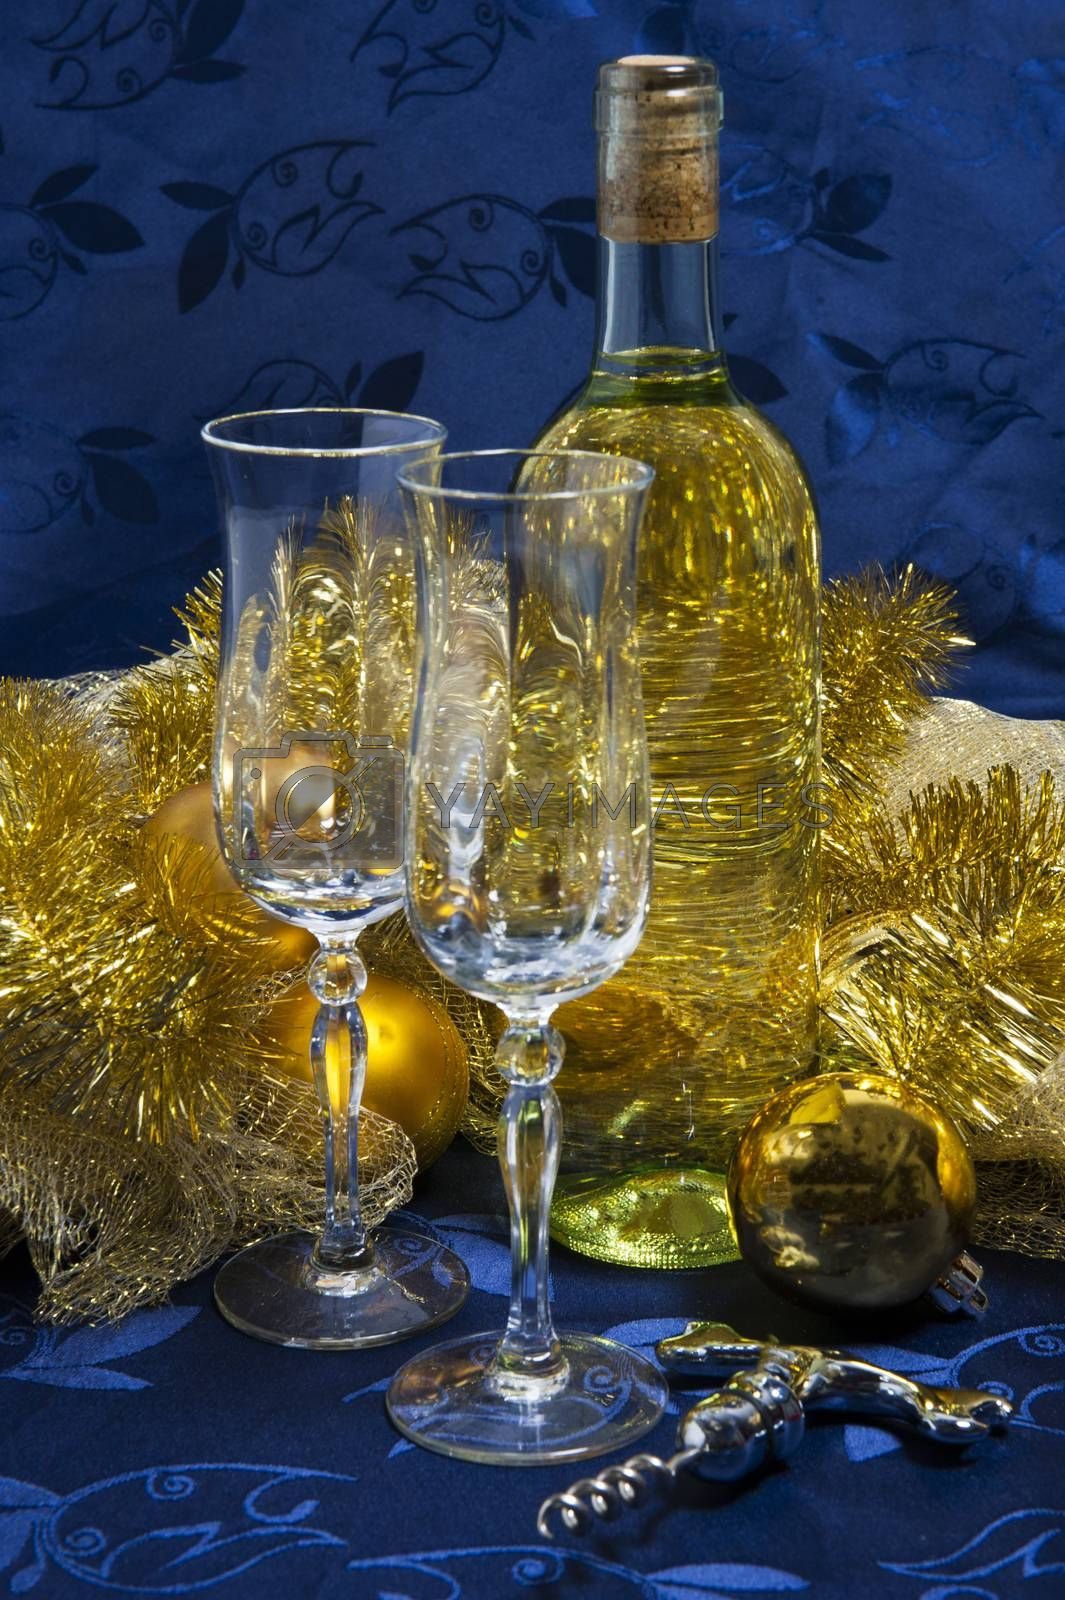 Bottle of white wine, glasses and Christmas decorations by carla720